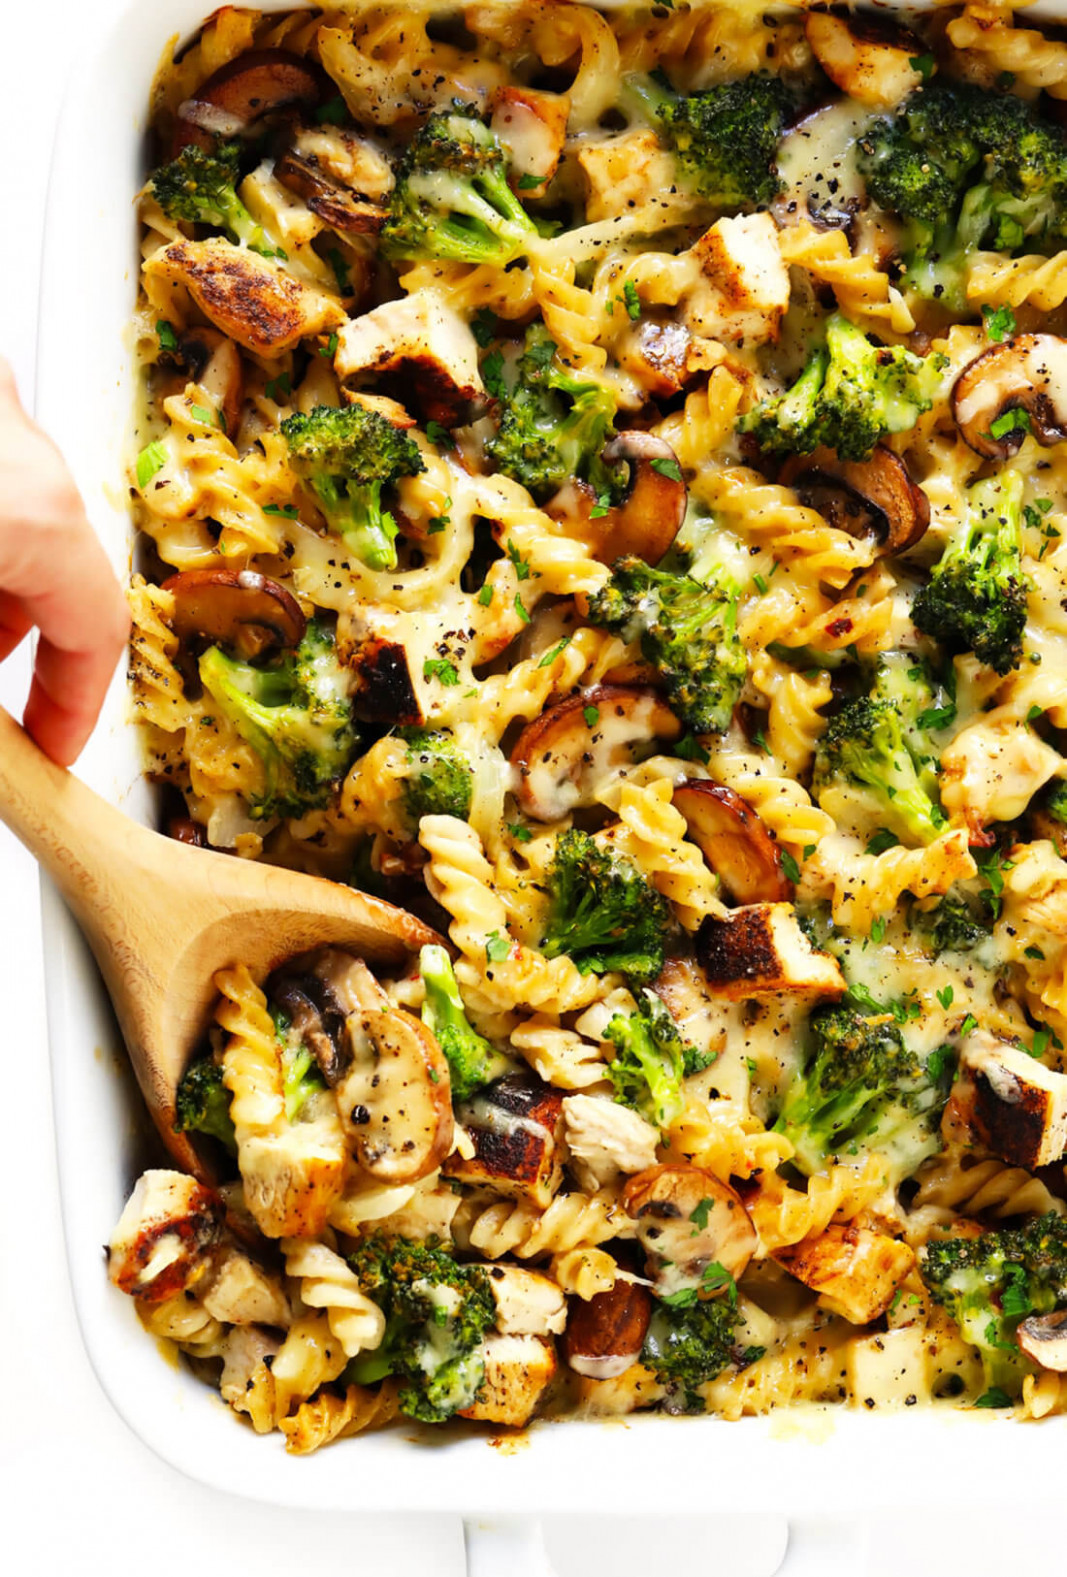 Healthier Broccoli Chicken Casserole Recipe | Gimme Some Oven - recipes pasta healthy